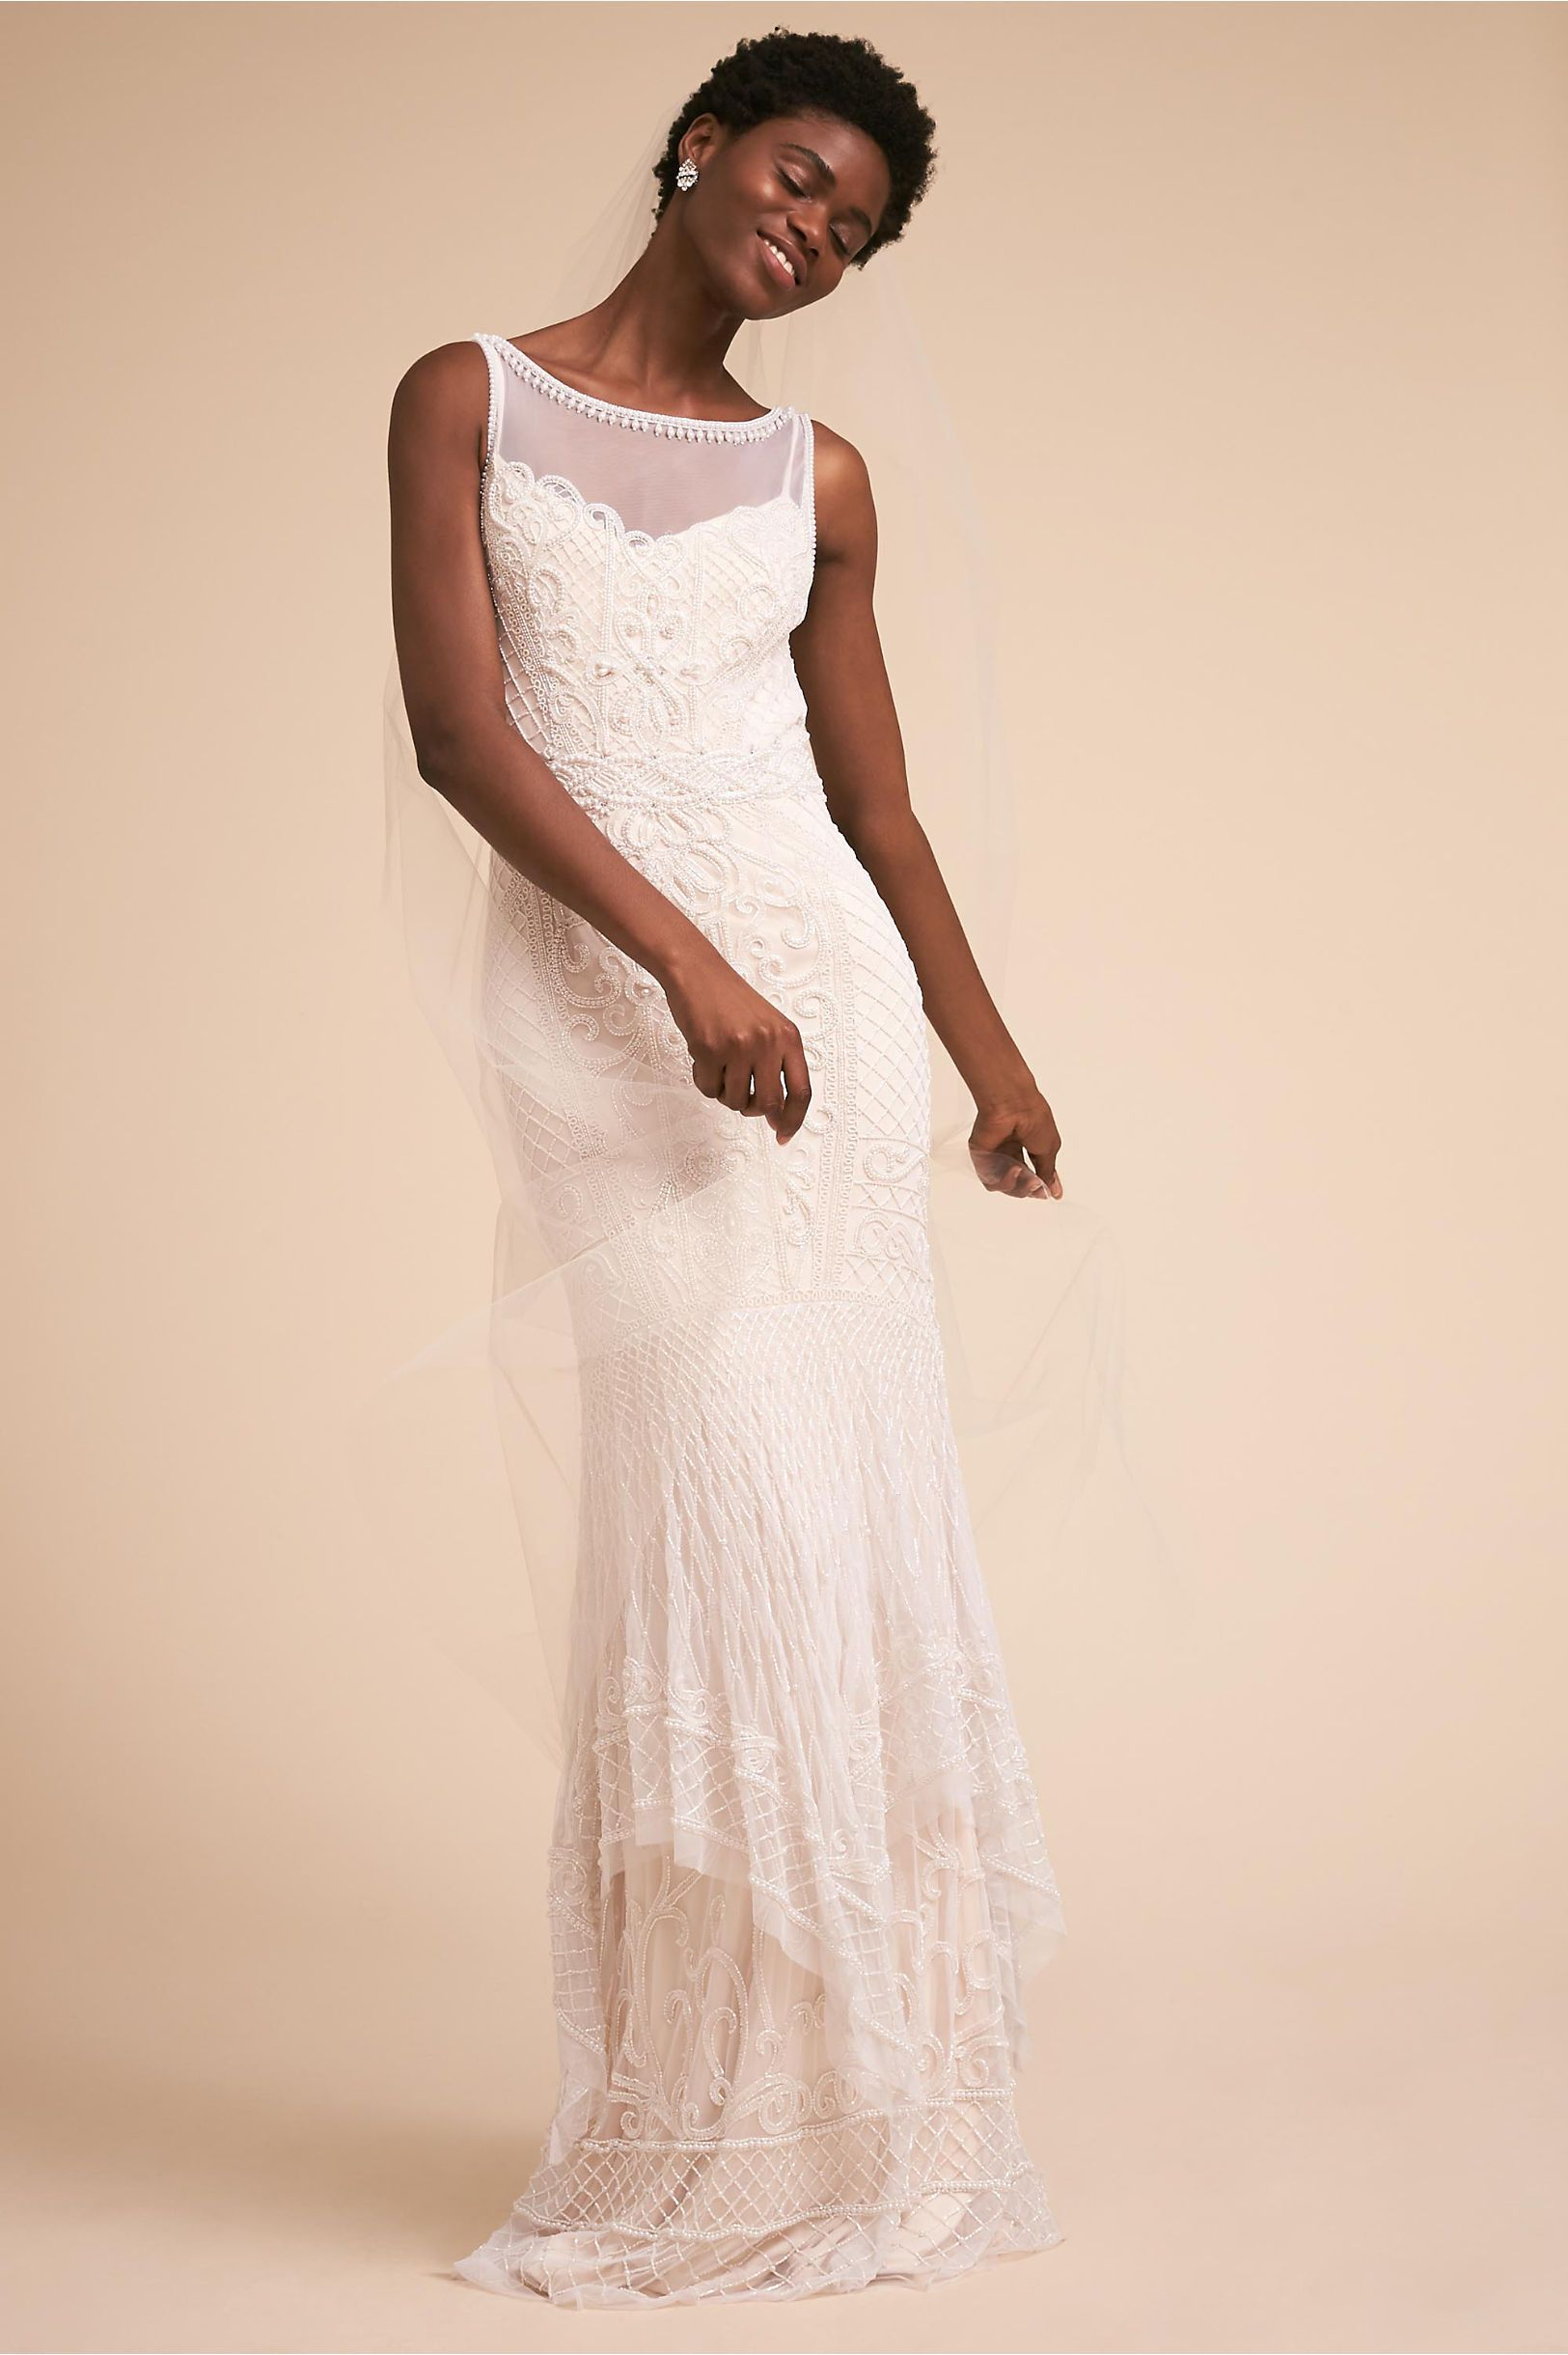 Theia wedding dresses  BHLDNus Theia Bridal Abby Gown in Ivory  Products  Pinterest